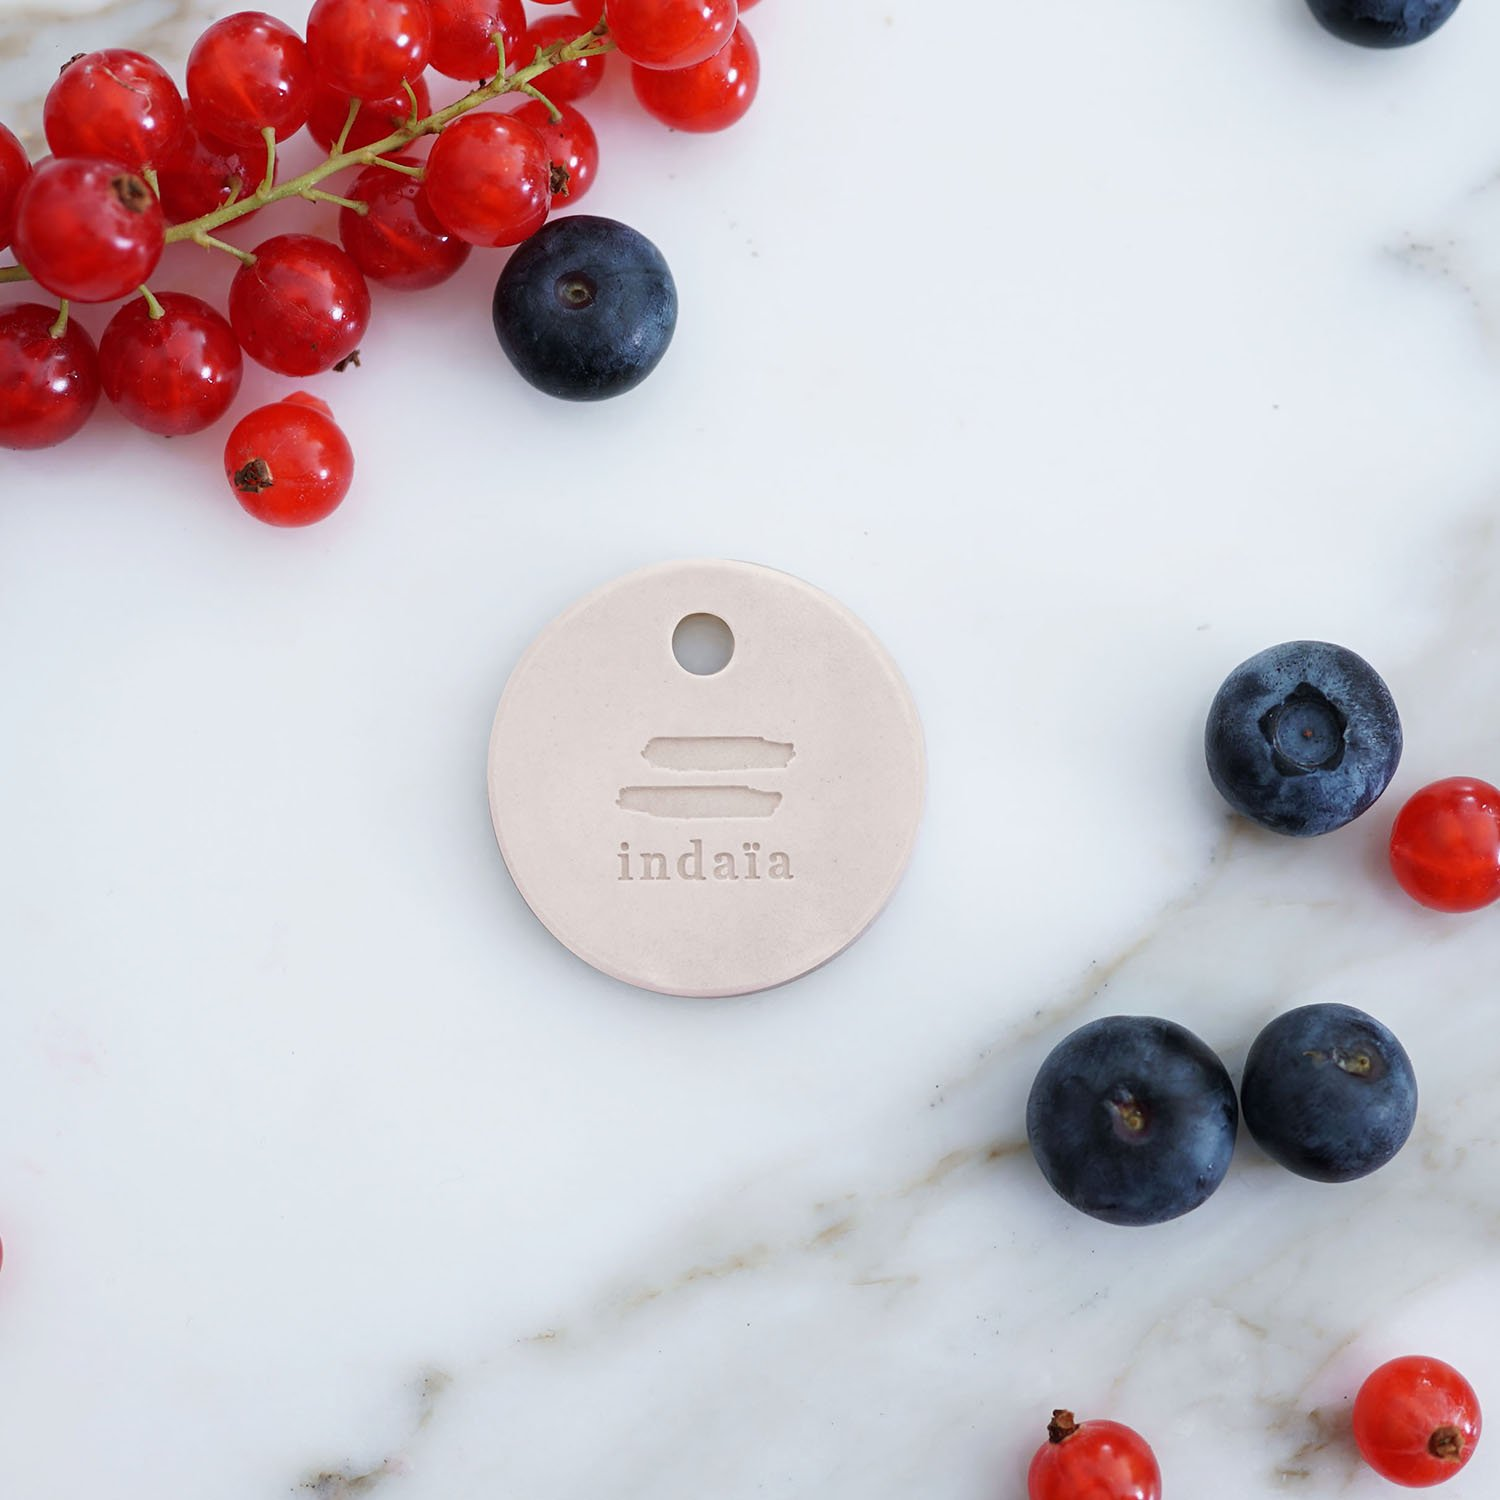 Indaia Collection BERRY Solo Box, Aroma Diffuser, add perfume inside your car with this stylish Scented Disc Fragrance Diffuser, can also be used in your closet, bag, luggage or confined space